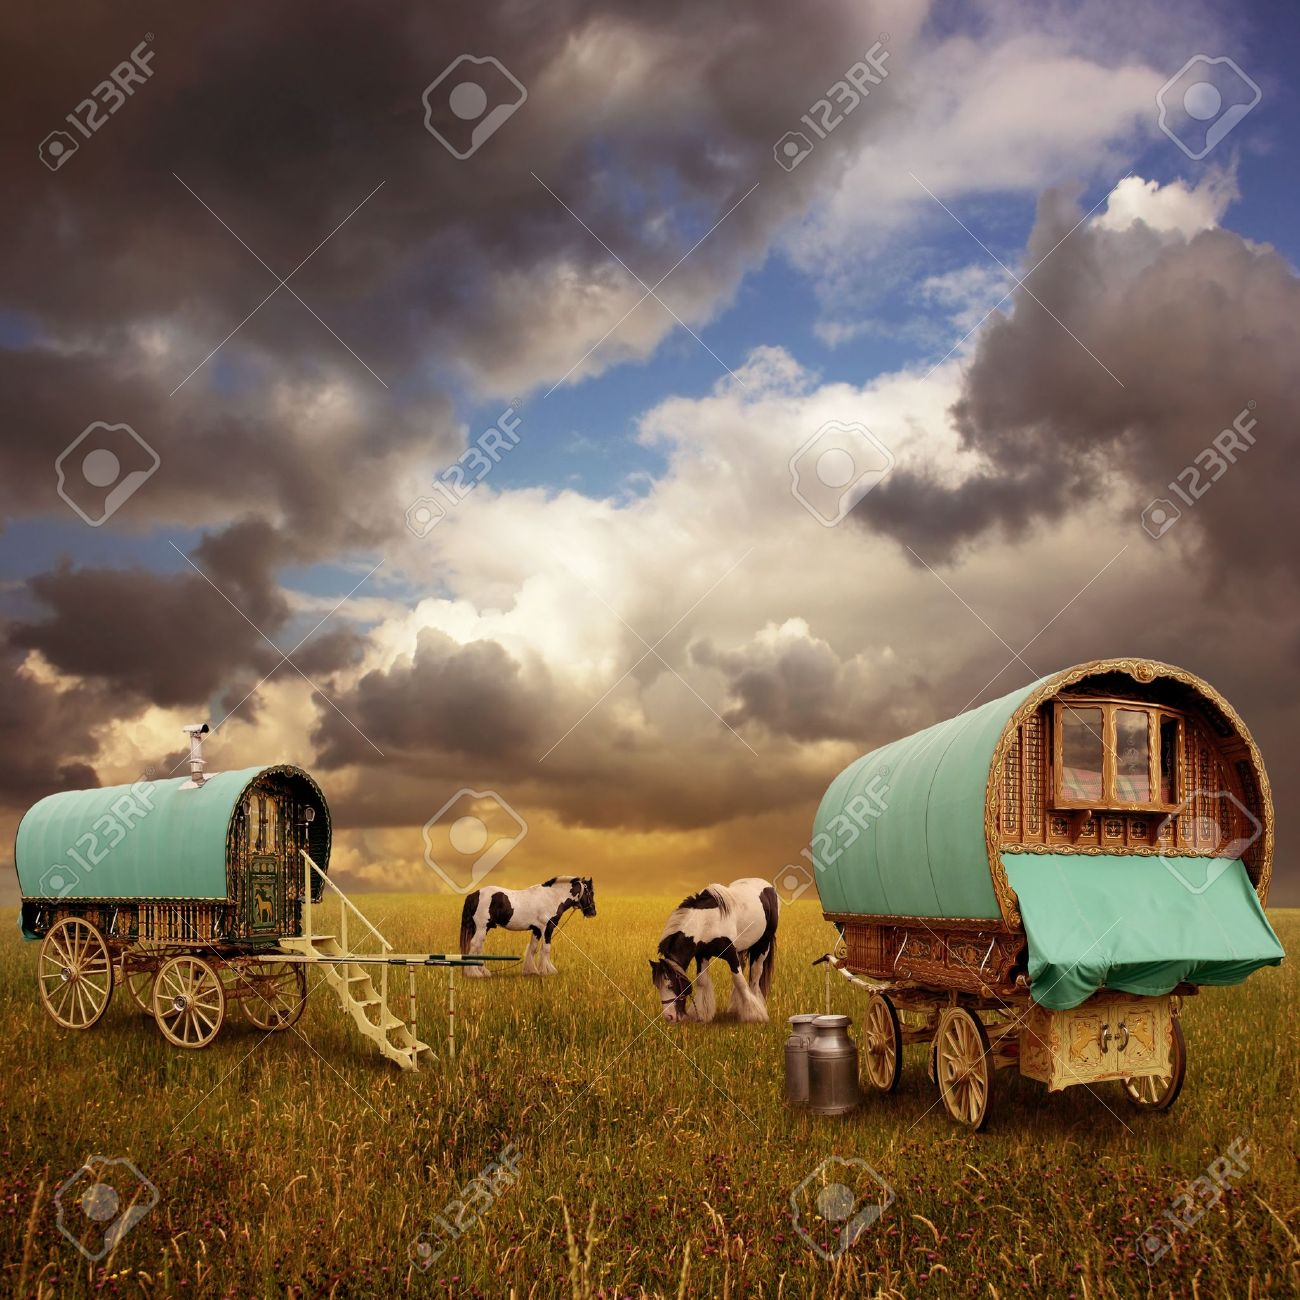 Old Gypsy Caravans, Trailers, Wagons with Horses - 10291214